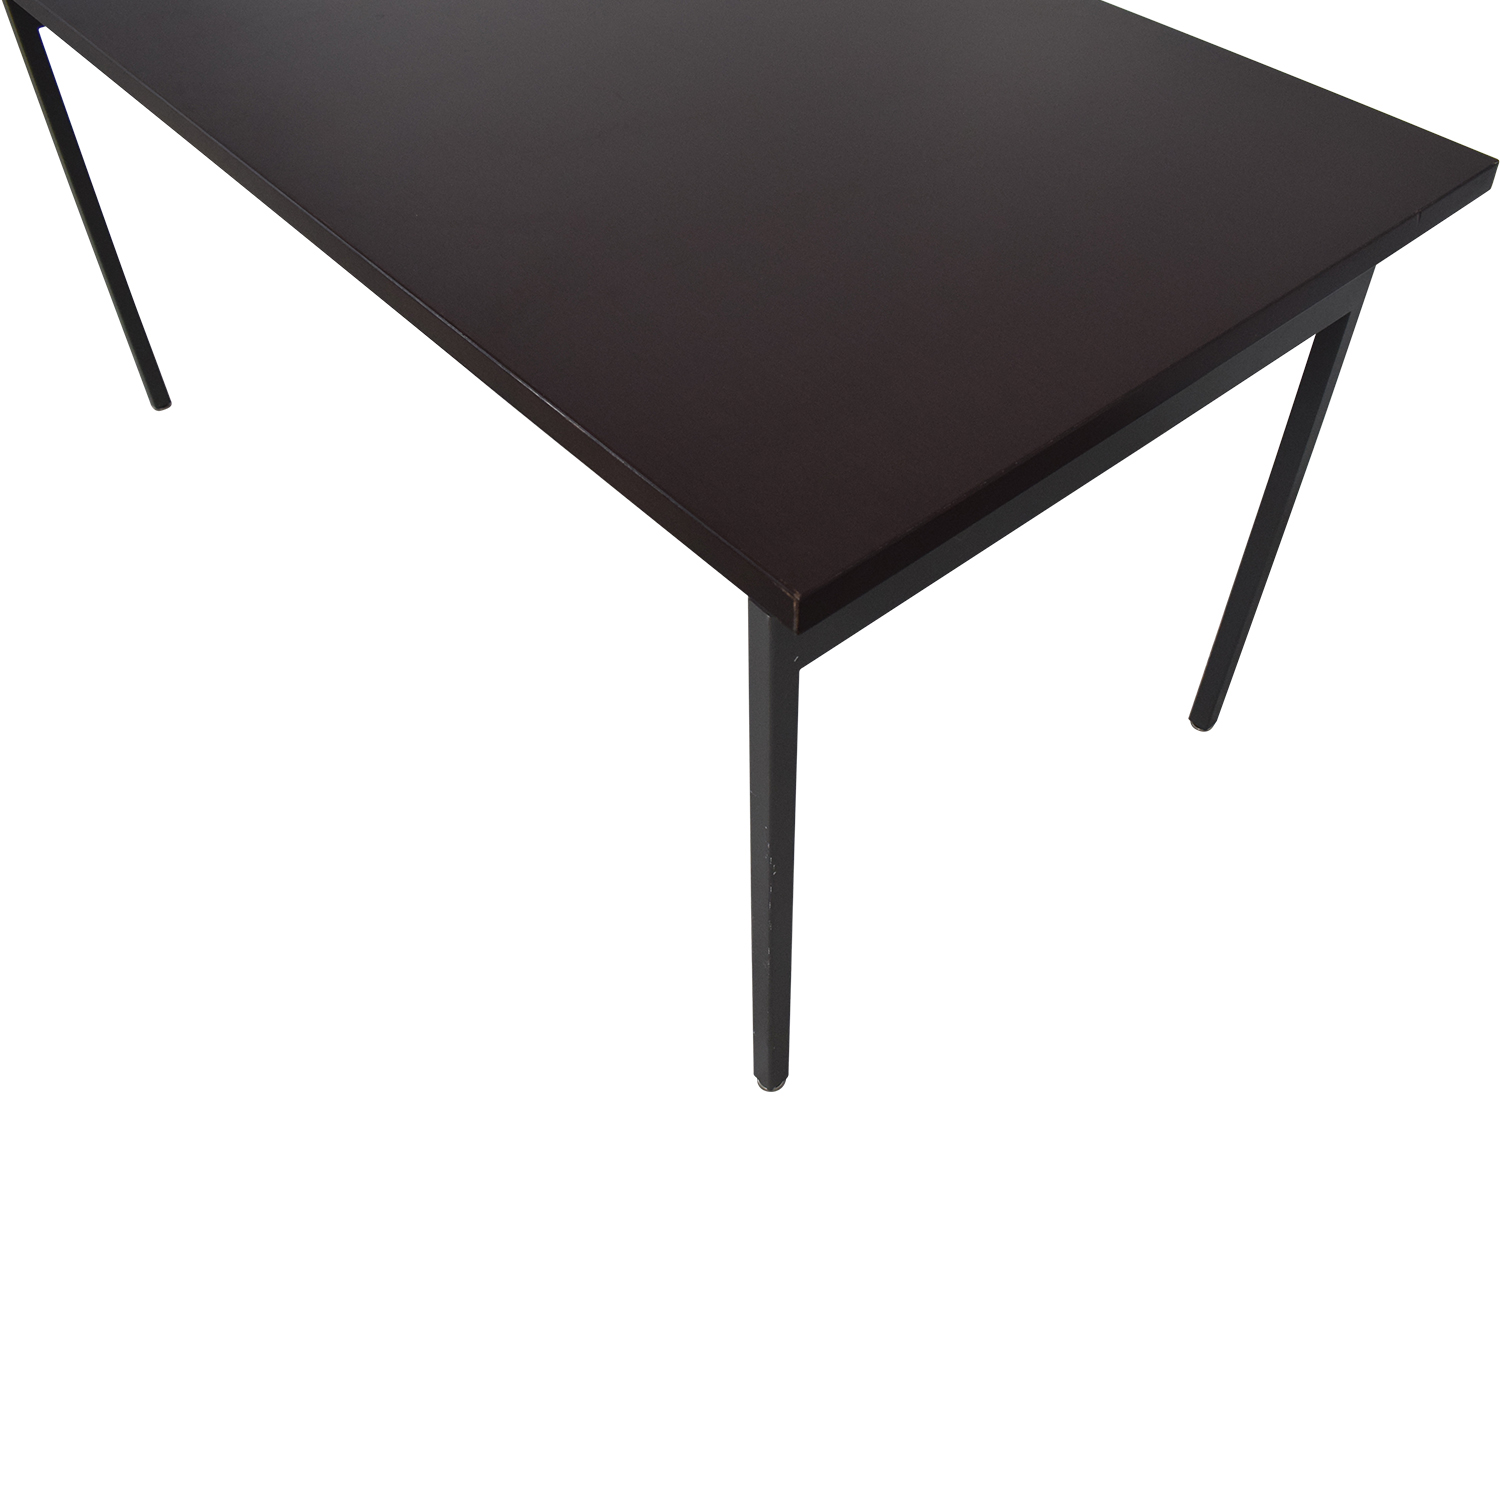 Knoll Knoll Antenna Desk second hand